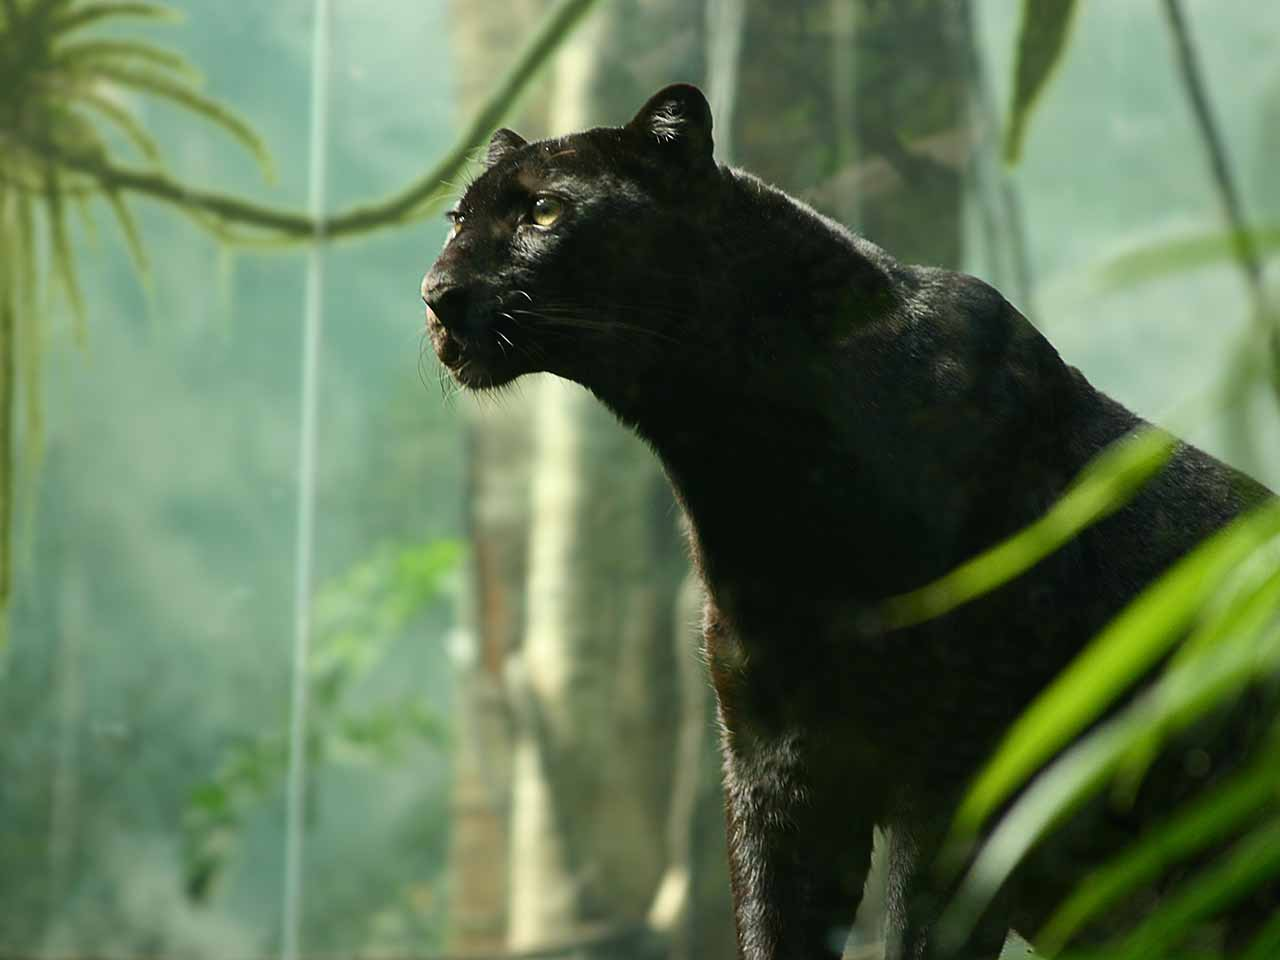 HD Wallpapers Pics: Black Panther HD Wallpapers 1910